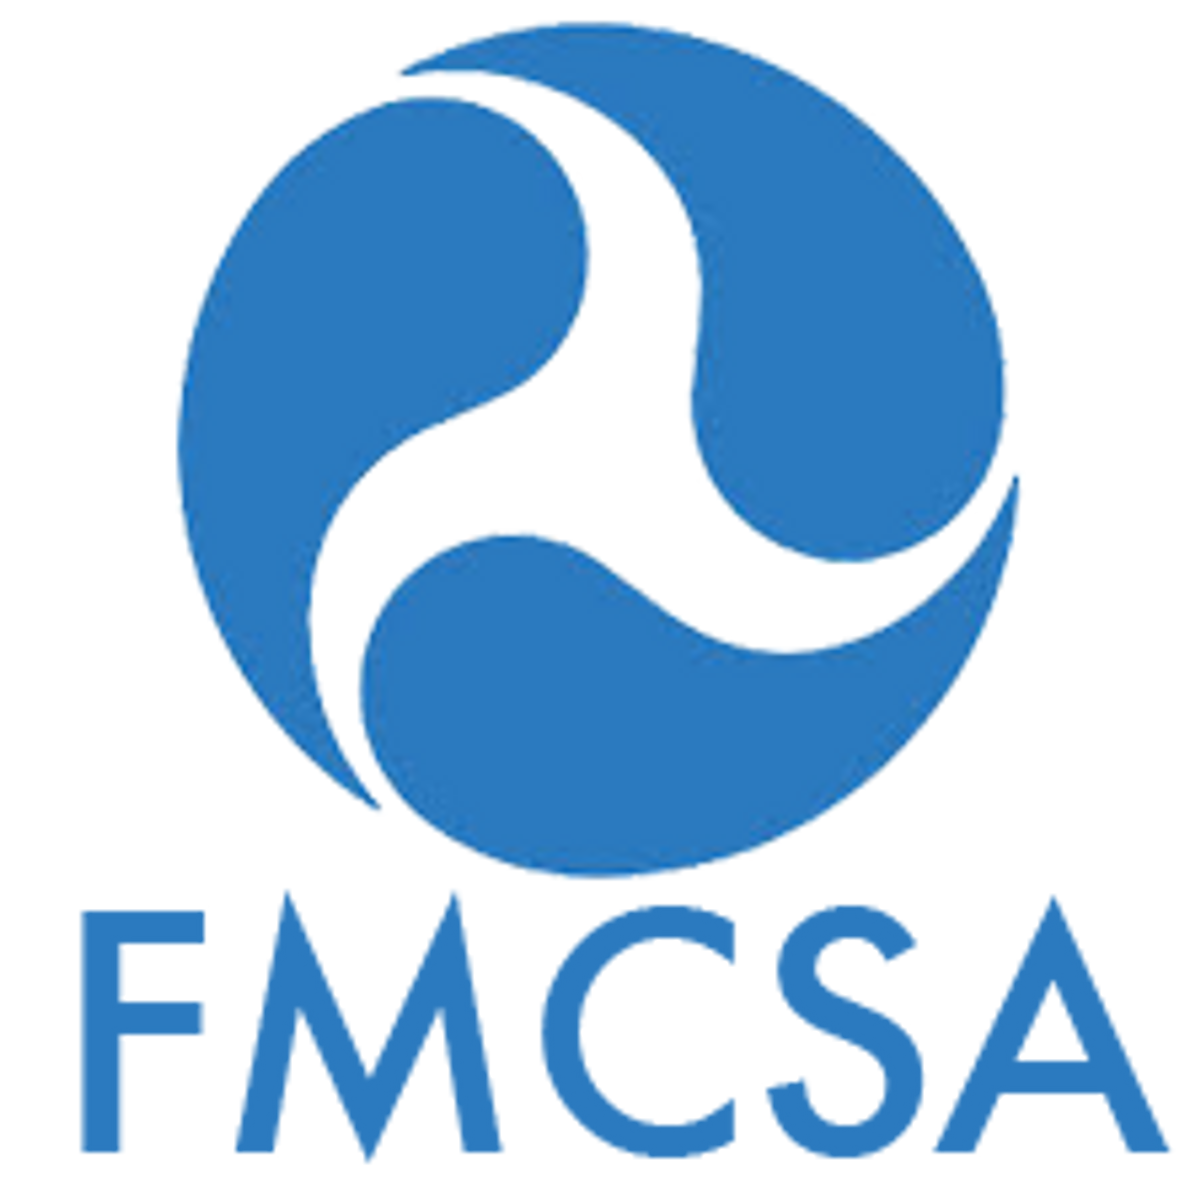 FMCSA: Electronic Logging Device Rule, CSA Among Top Priorities